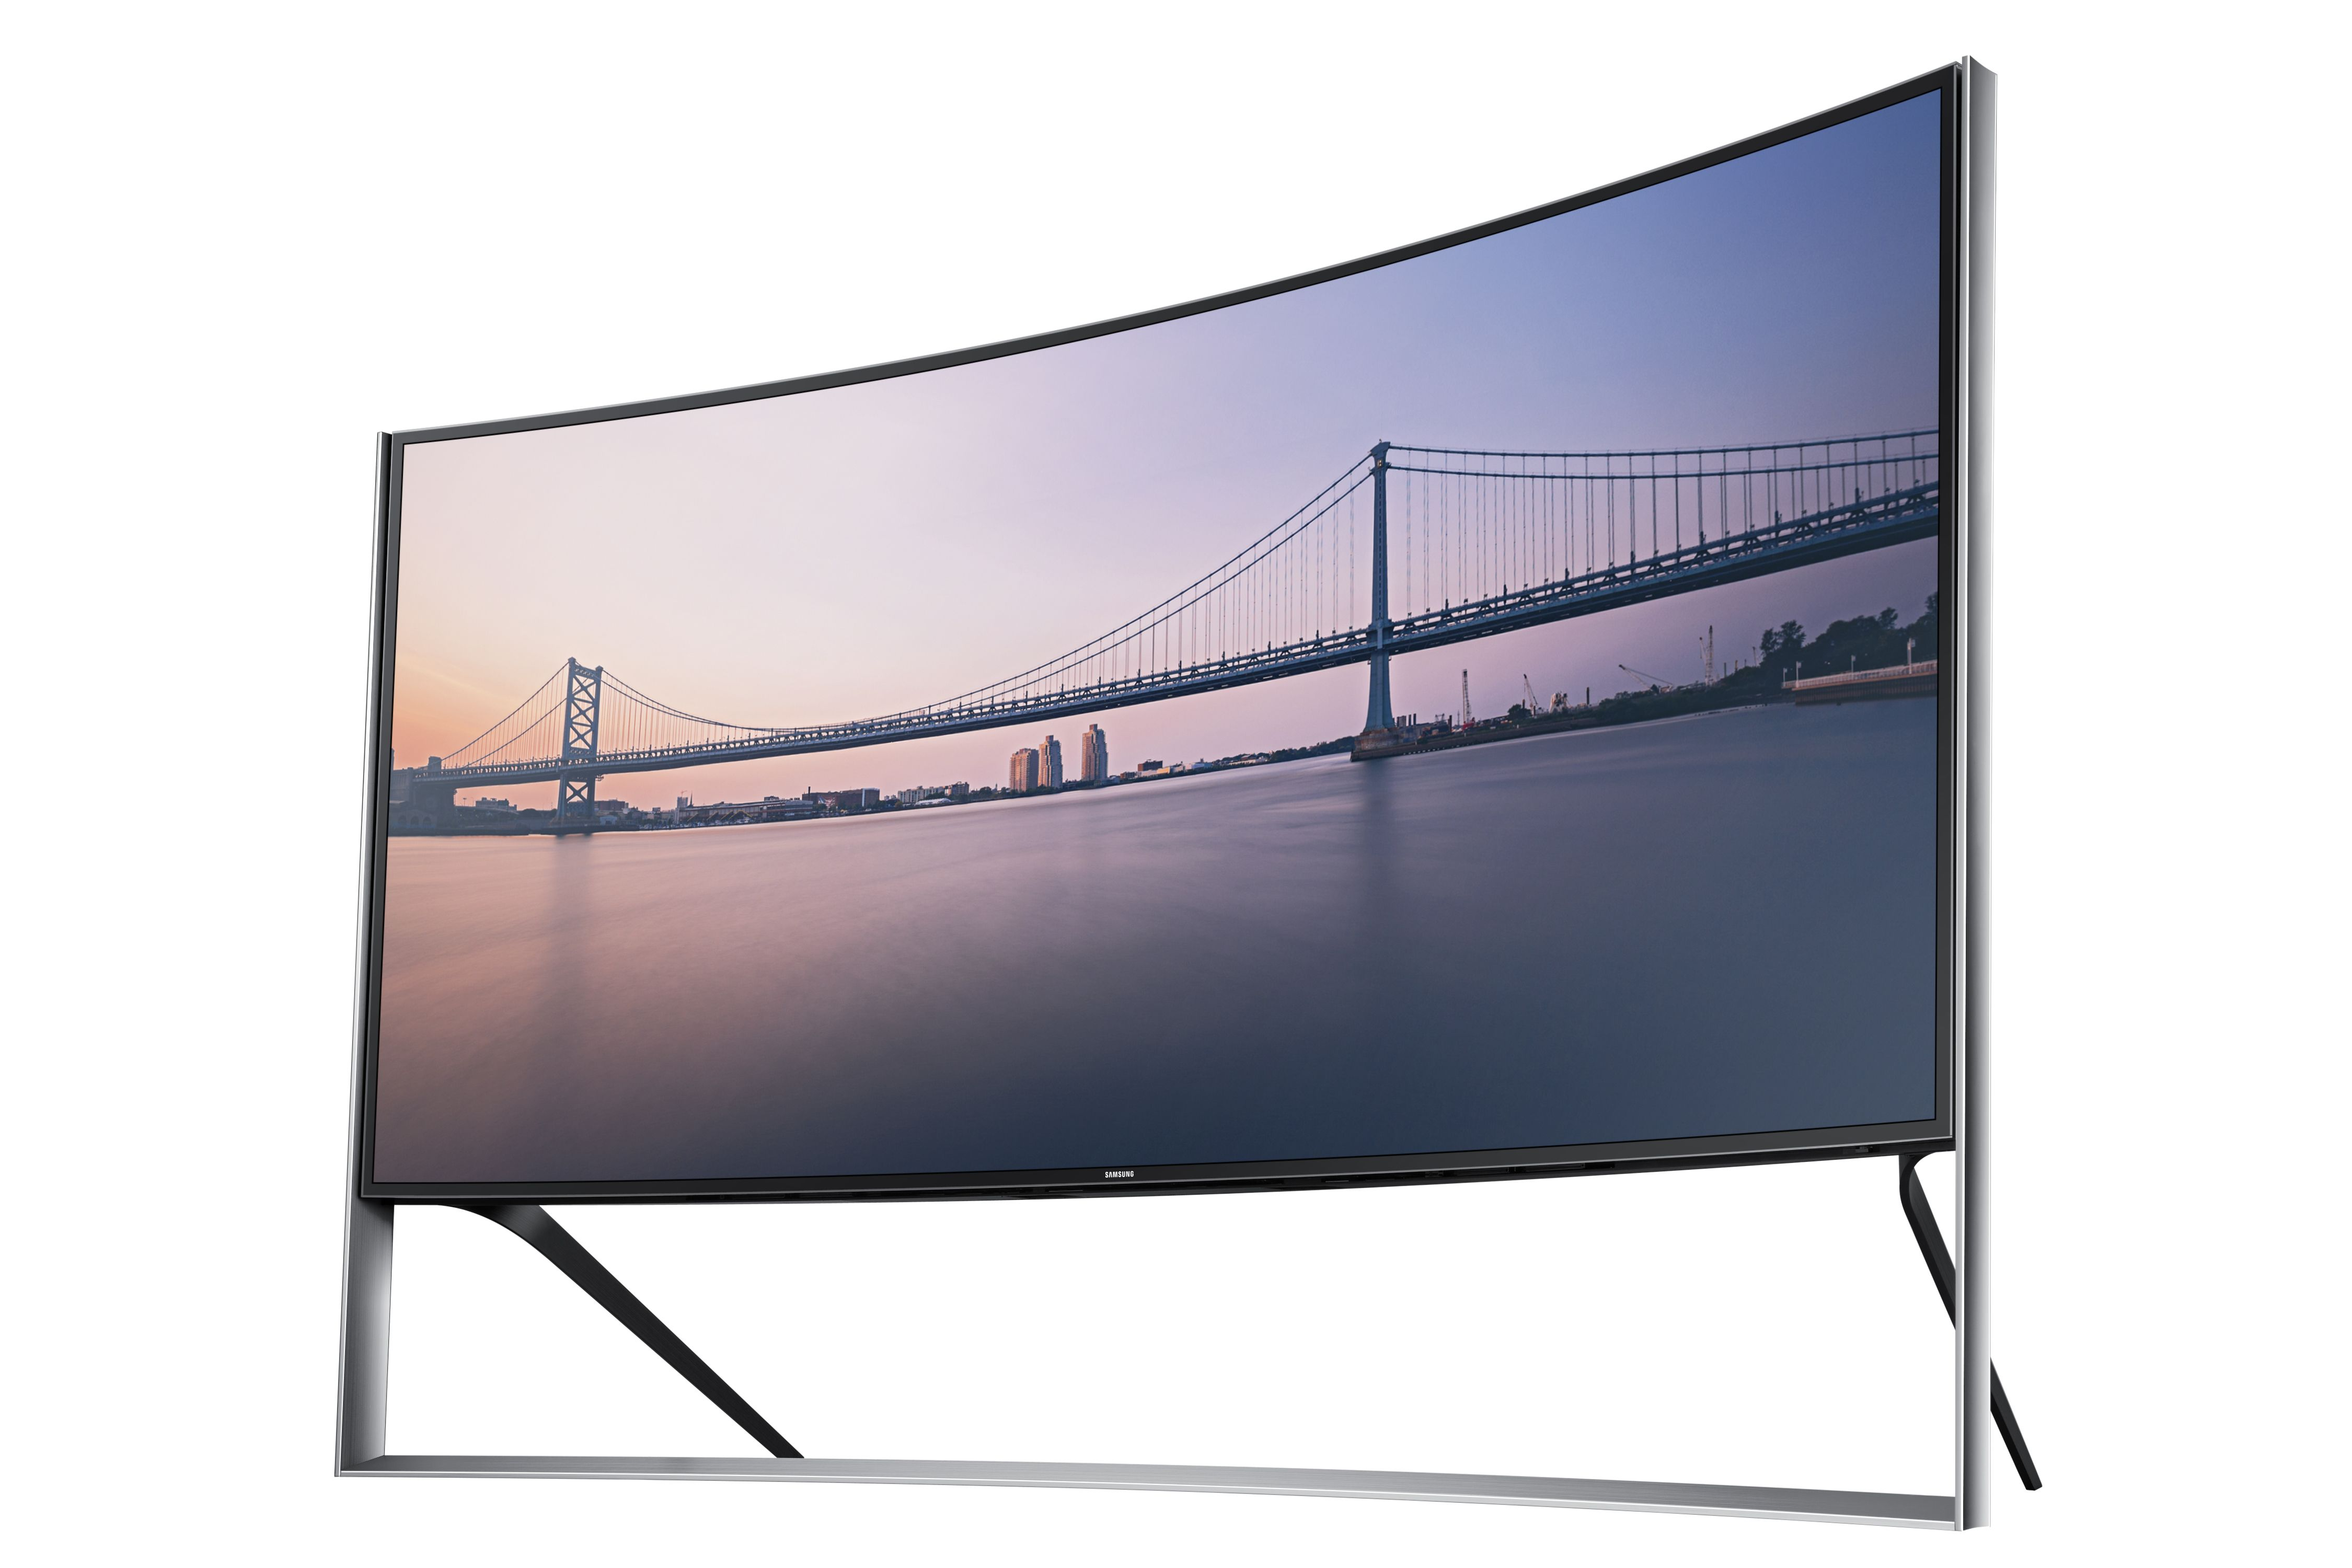 Samsung Curved UHD TV features screen that not only envelops viewers with immersive curved design but also provides a movie theater experience at home